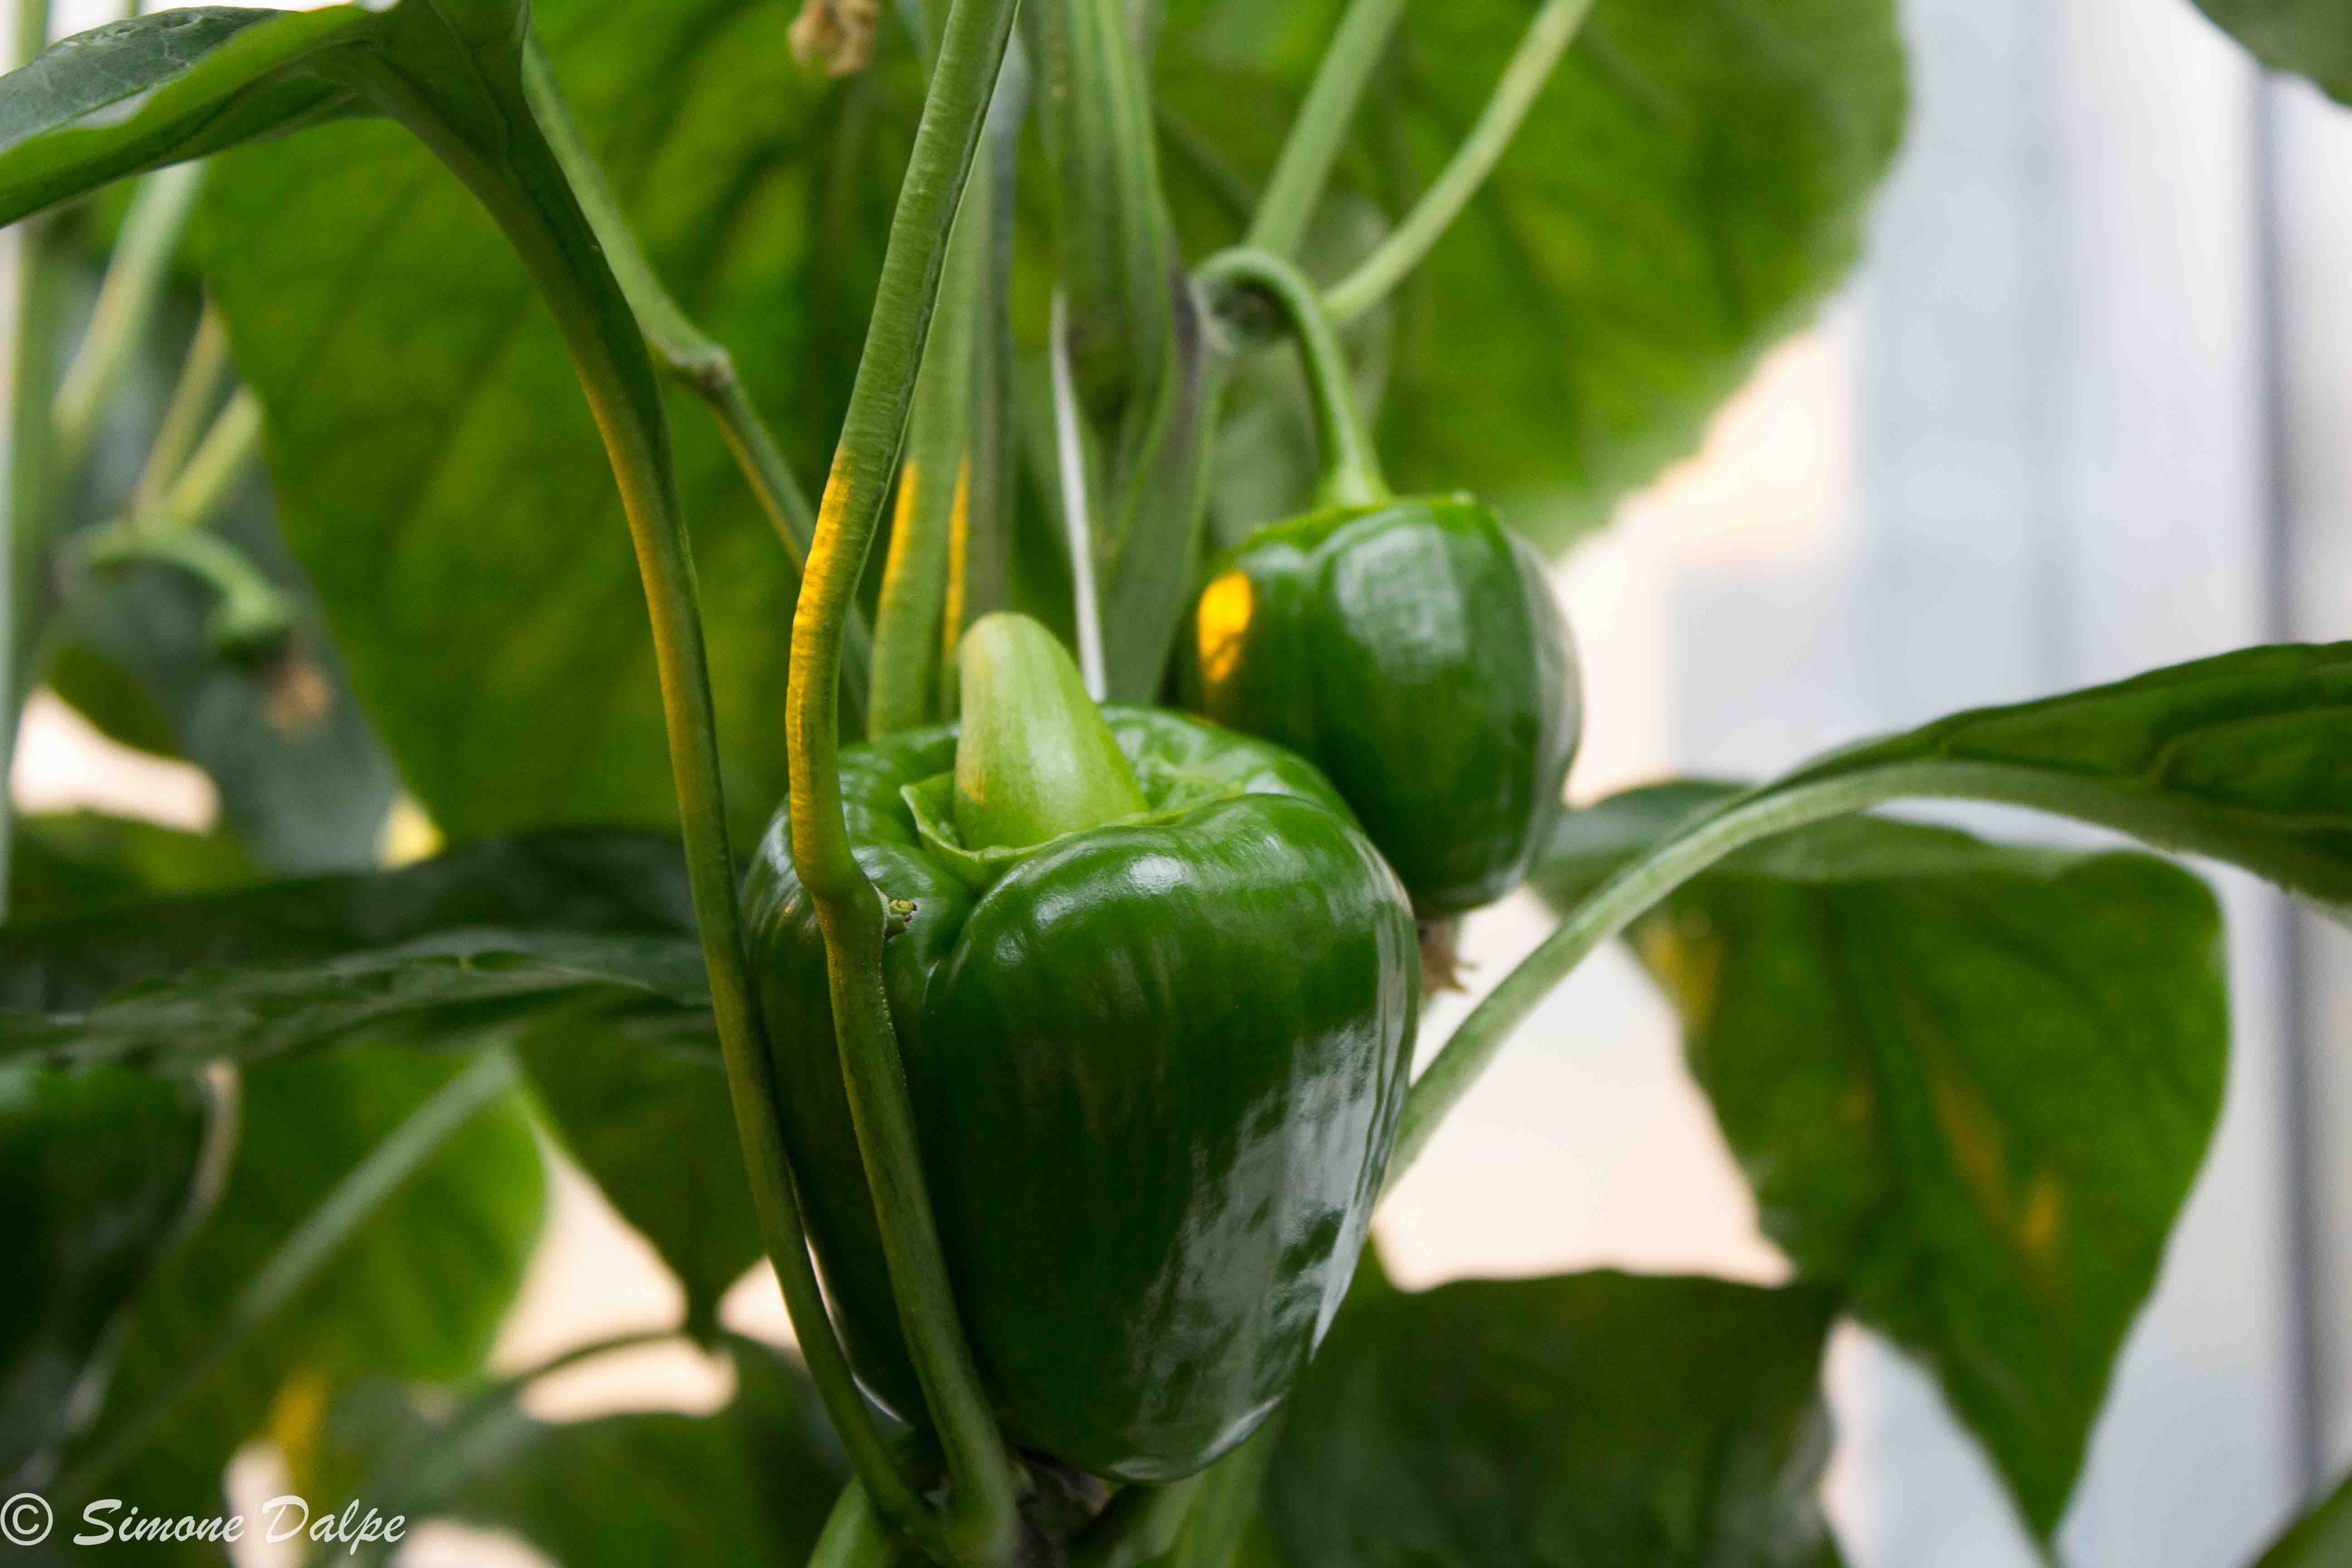 Young sweet bell peppers ripening on vine